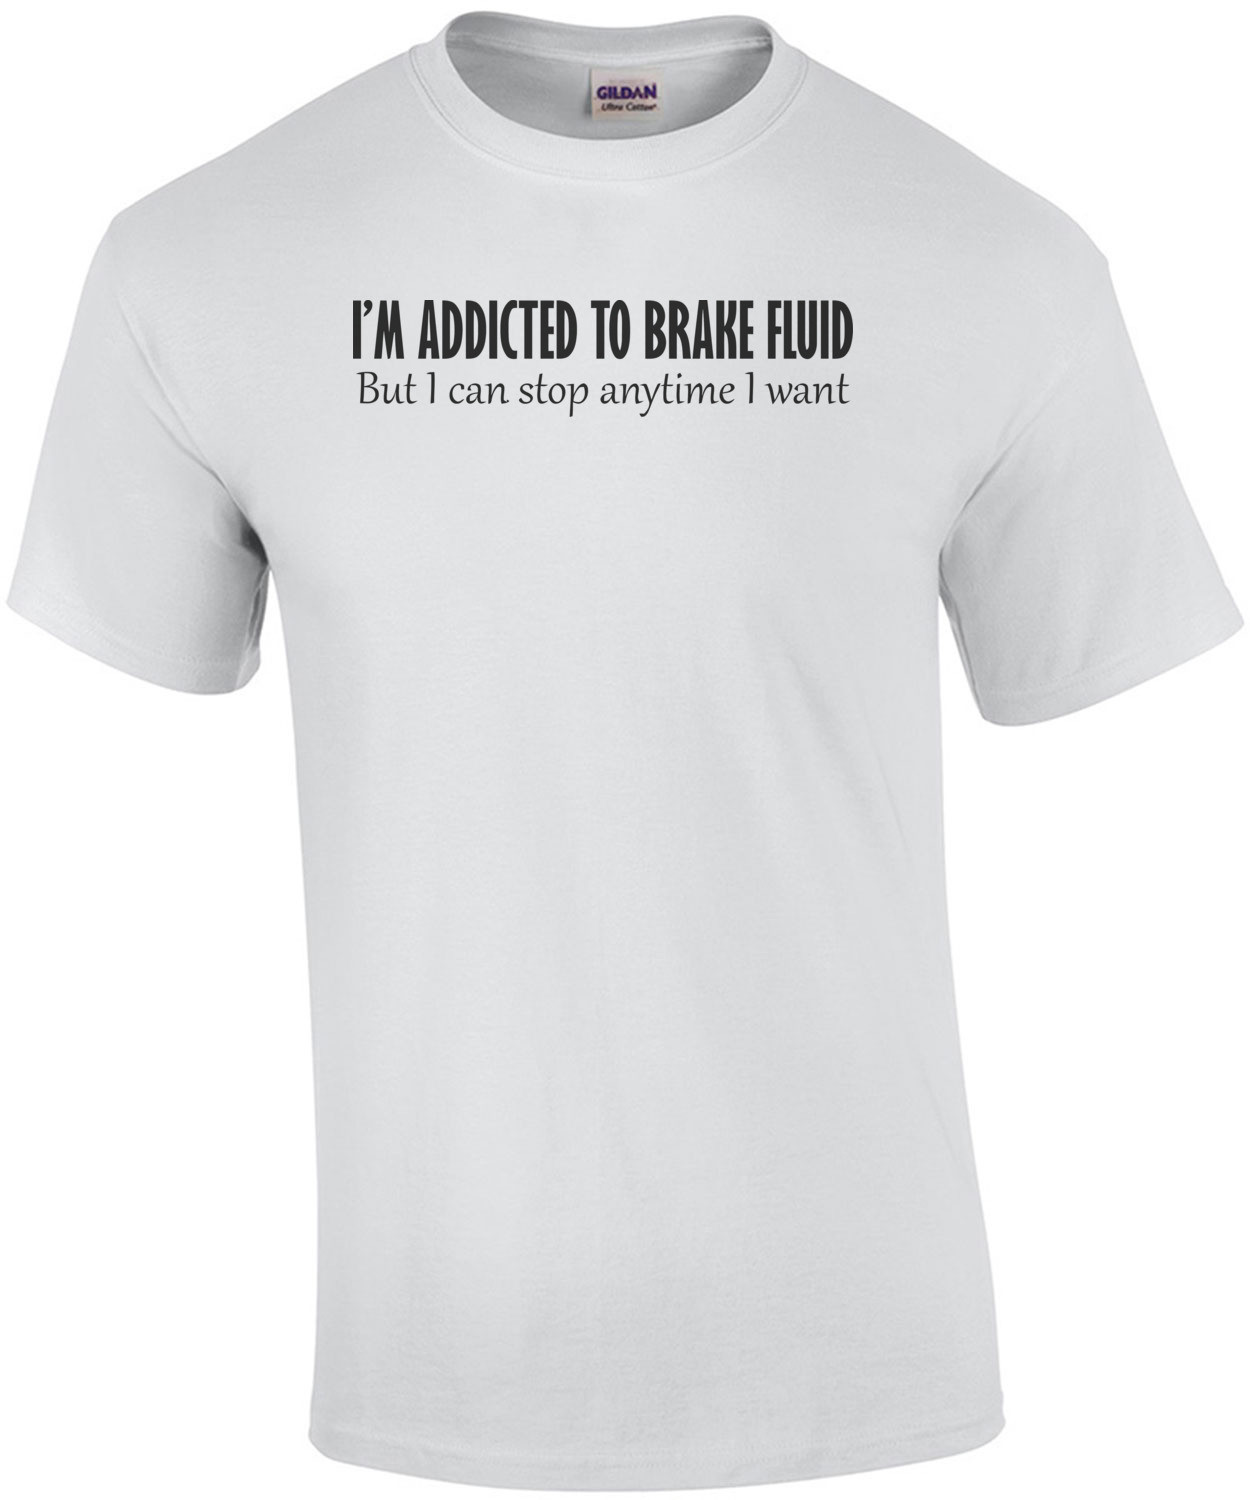 I'm Addicted To Brake Fluid, But I Can Stop Anytime I Want Shirt